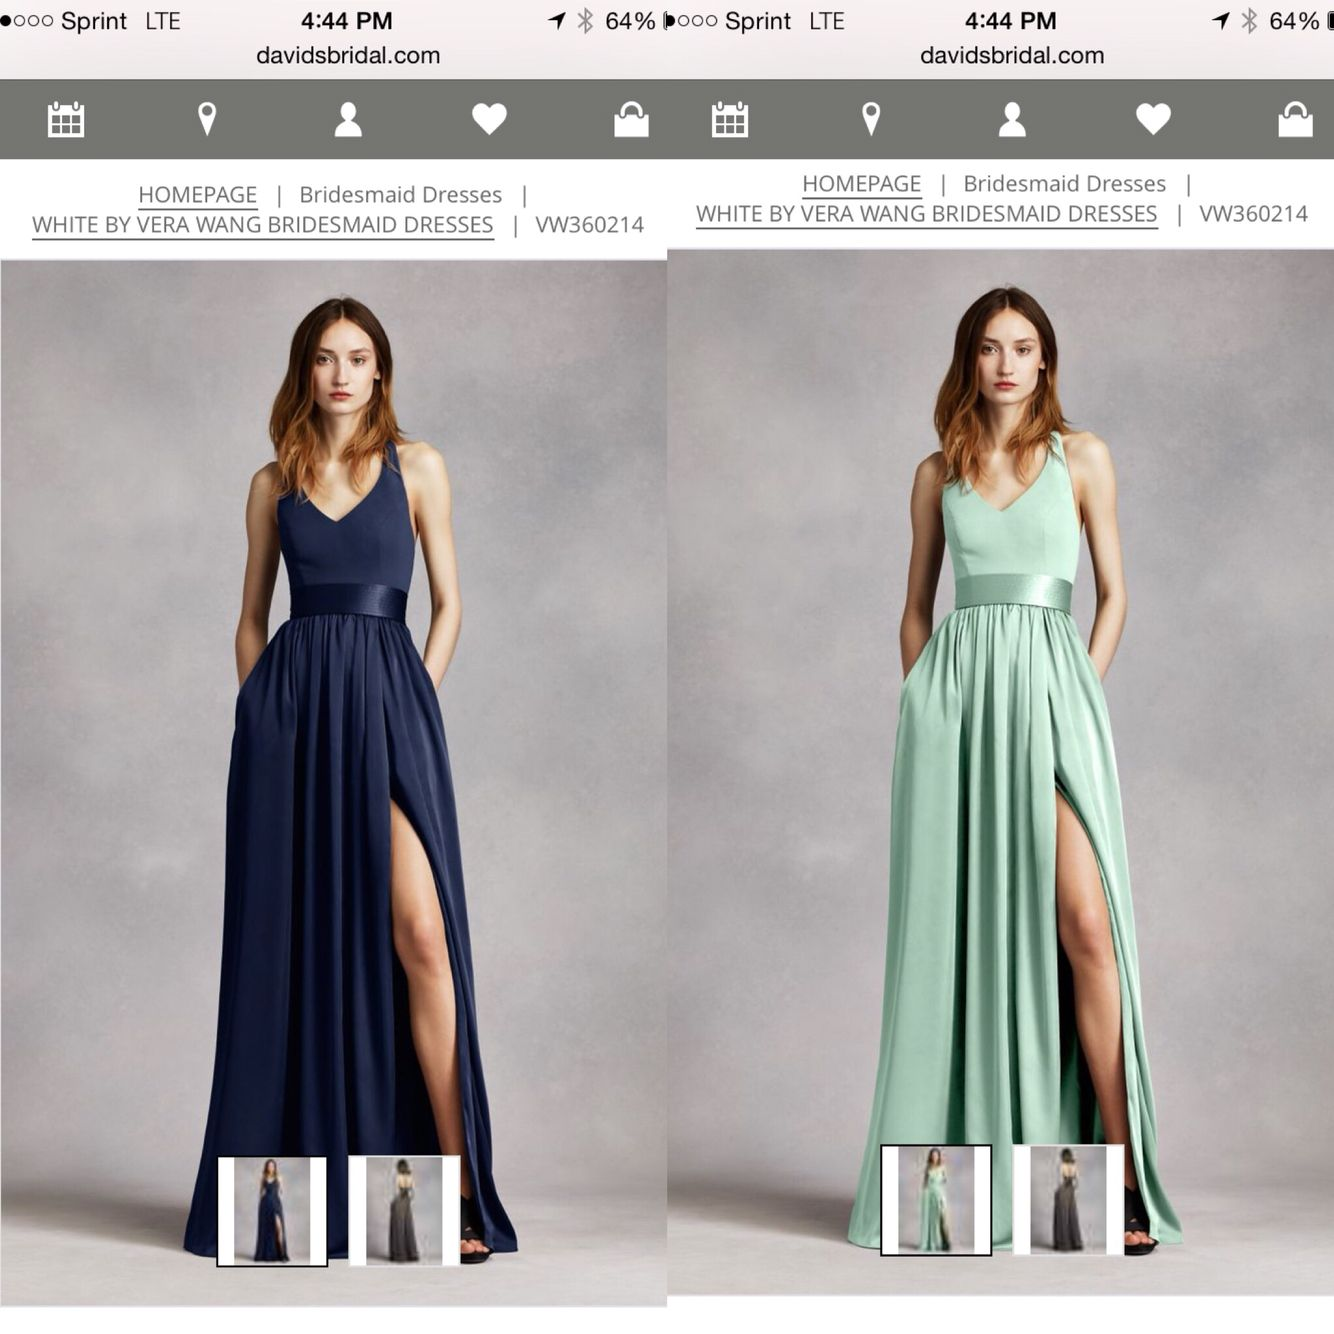 b87cc276b94e Potential bridesmaid dress. Mint or Marine. V-neck halter gown with sash  style. VW360214